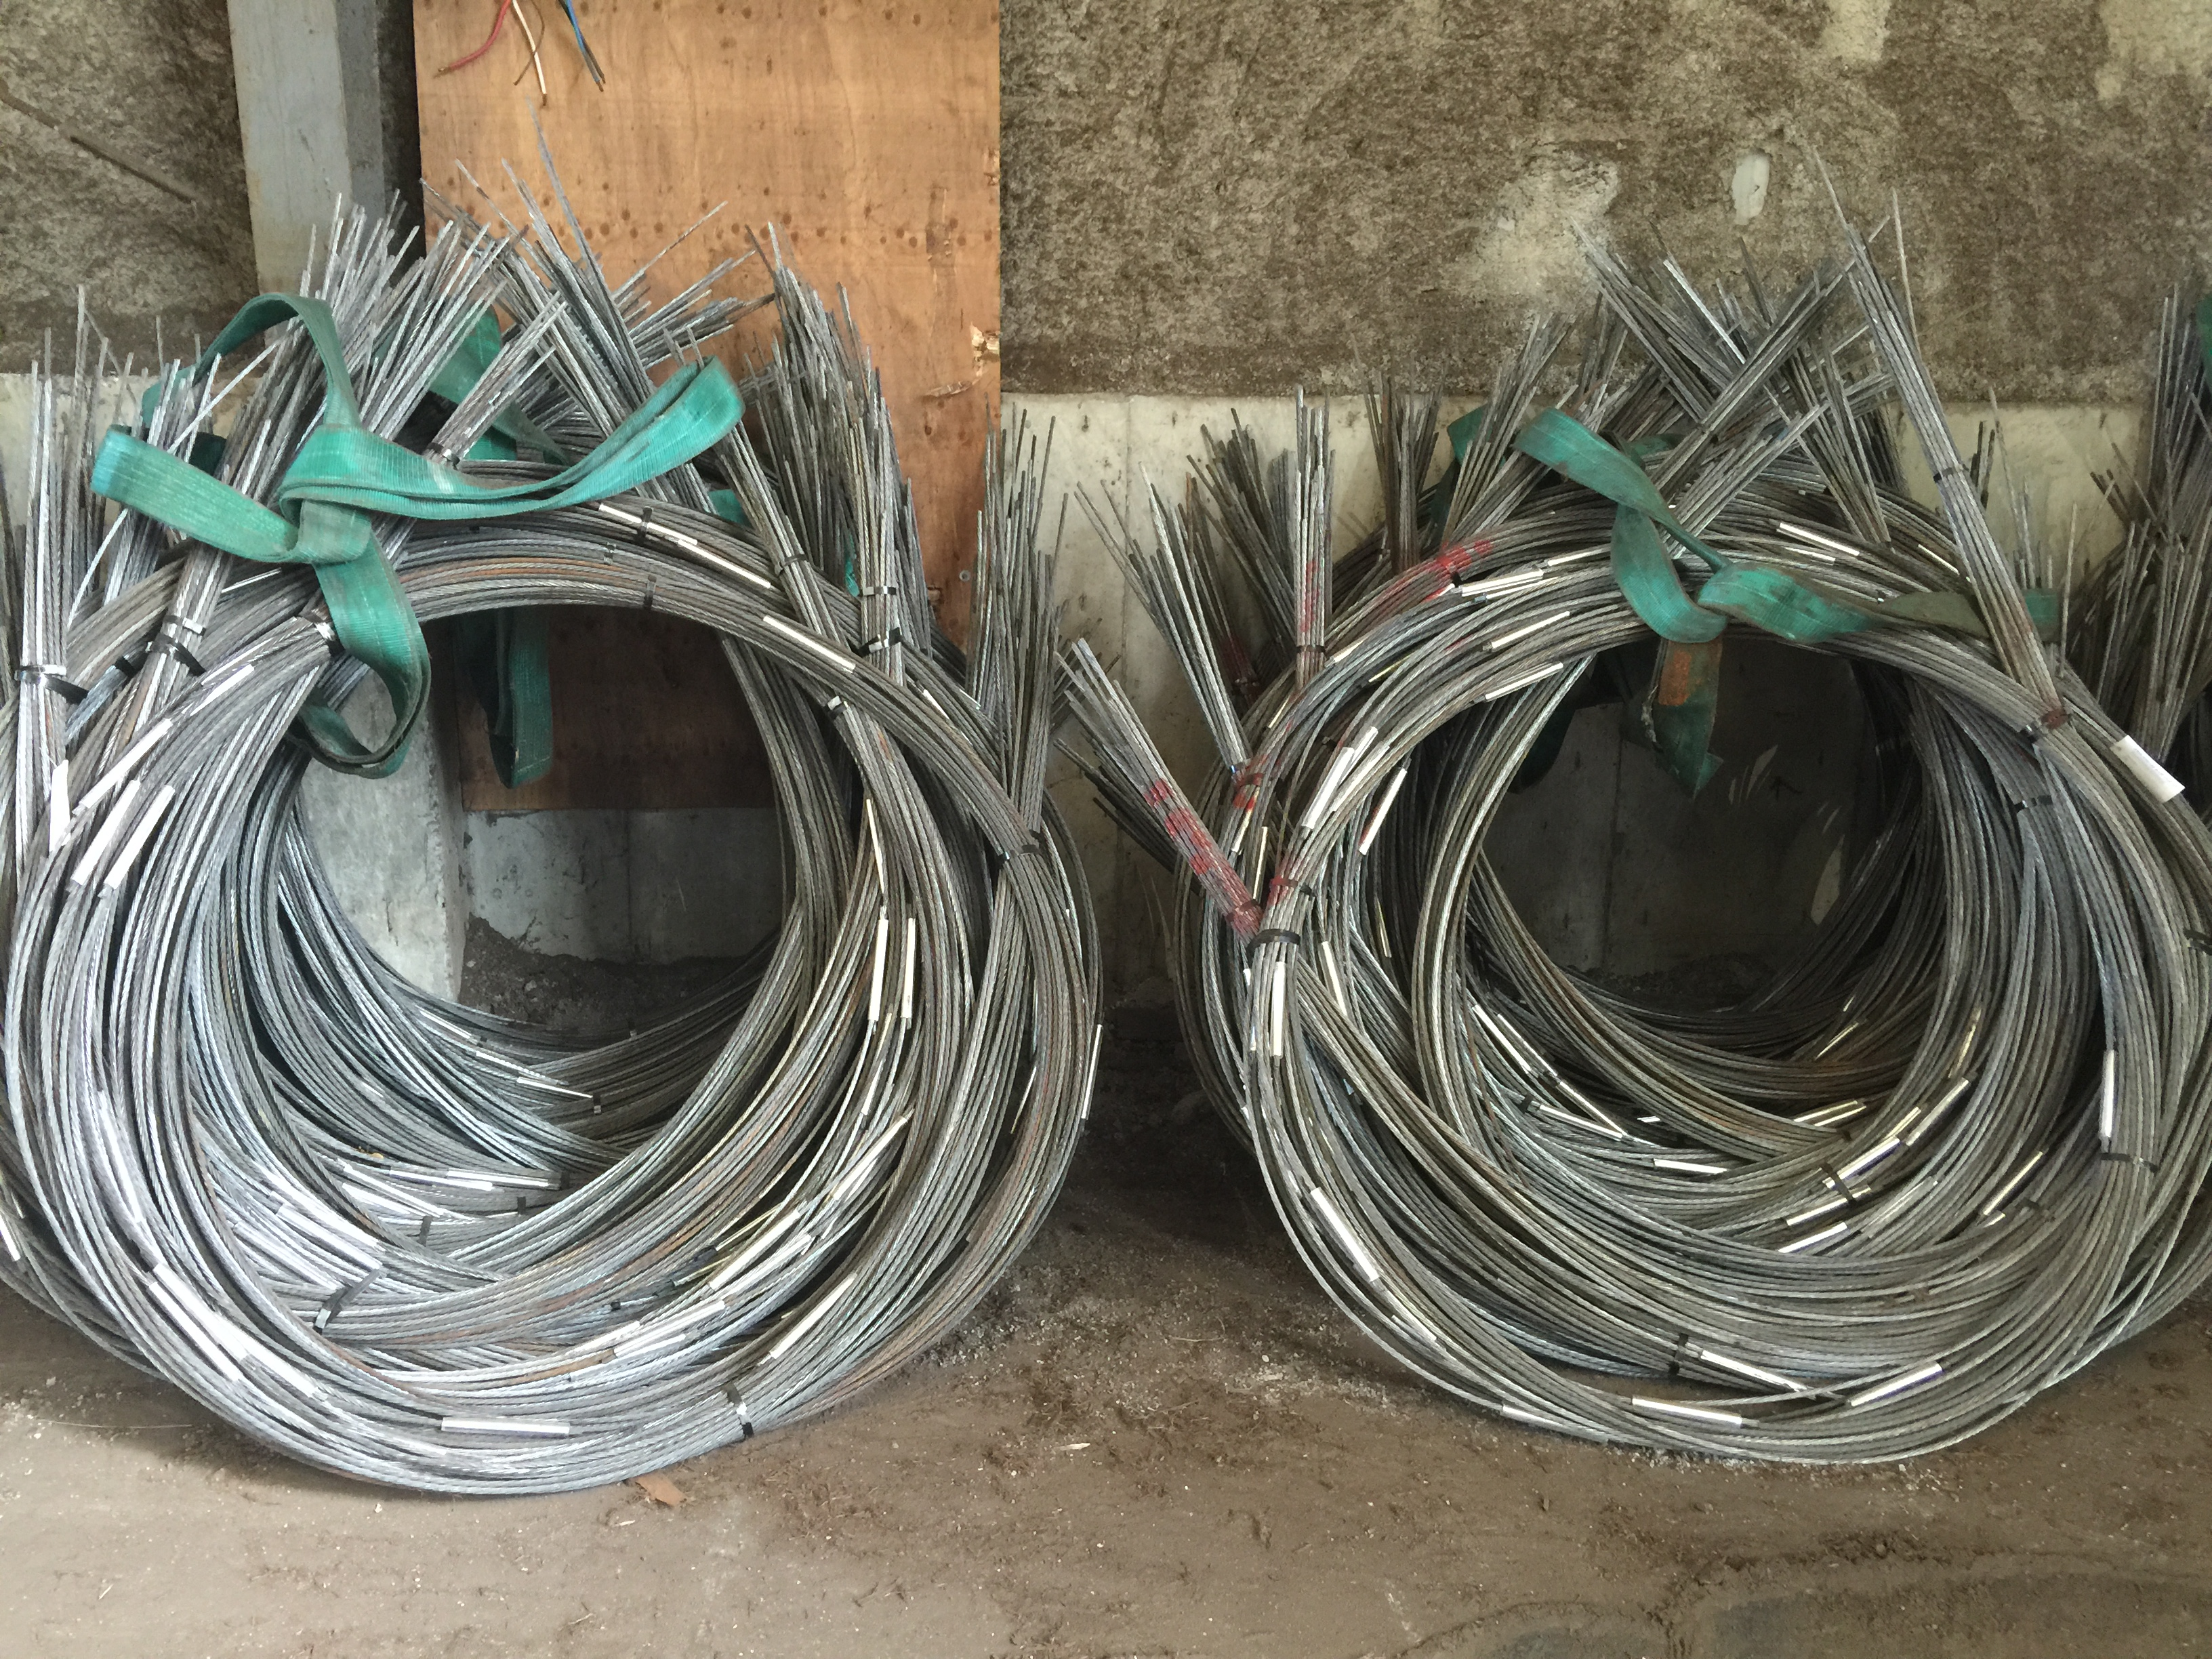 River Cable Ltd. | Wire Rope,Rope,Twines,Steel Ropes,Log Bundling ...